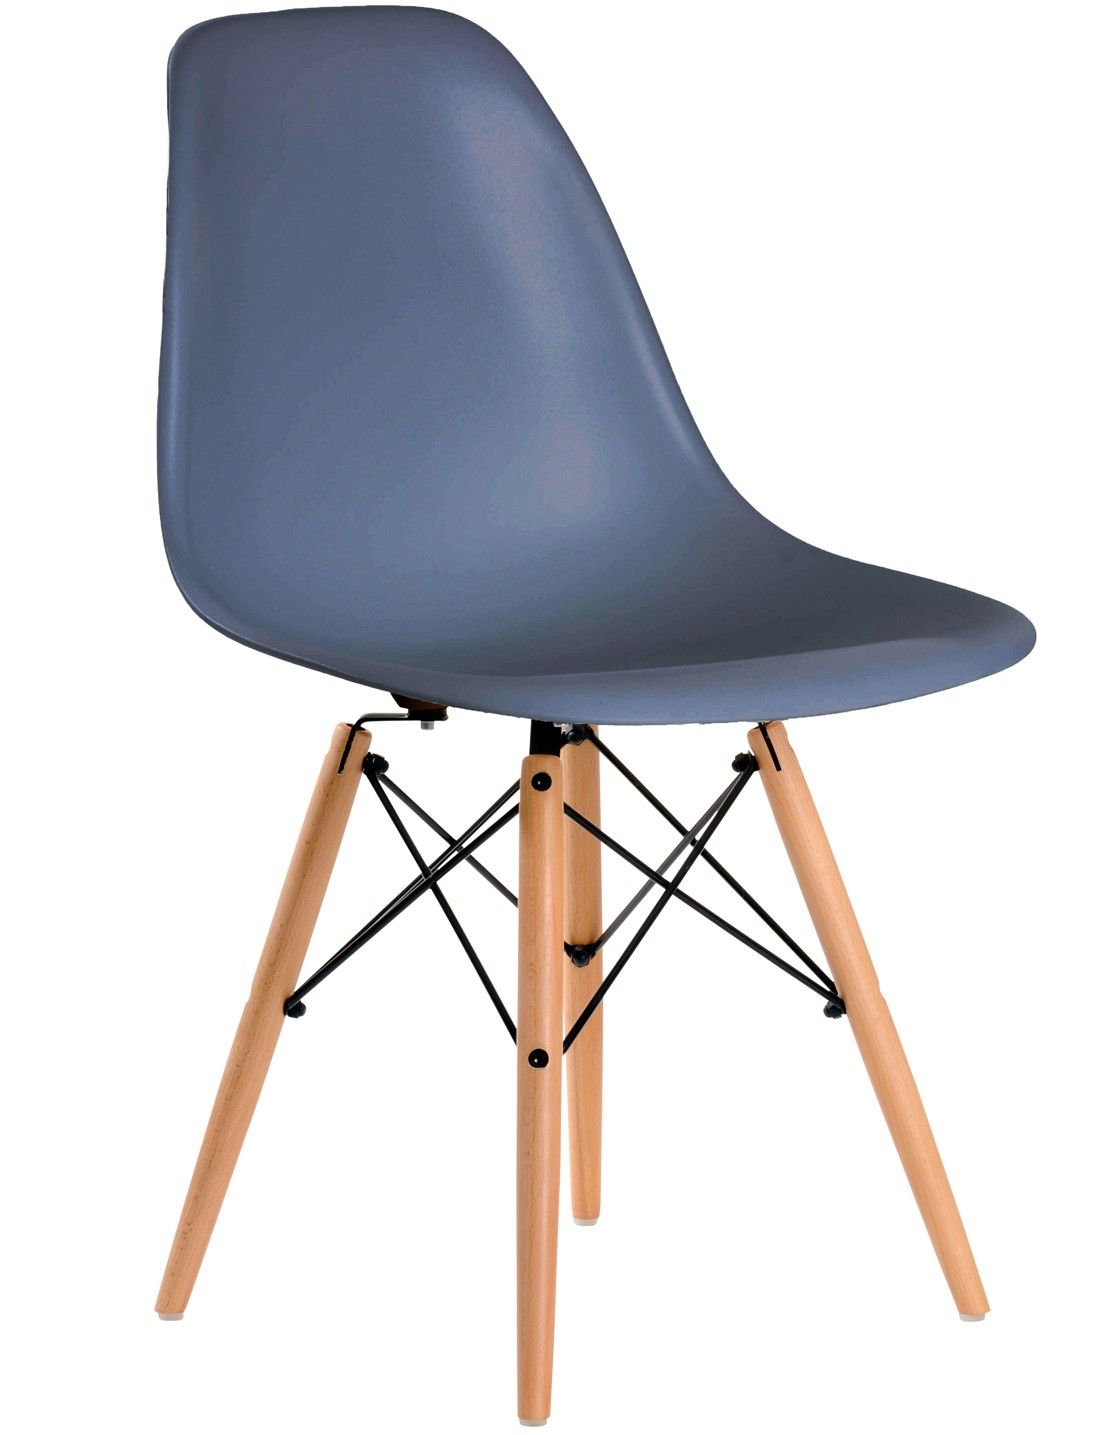 Charles Eames Stuhl Eames Dsw Chair | Eames, Charles Eames Stuhl, Eames Stuhl